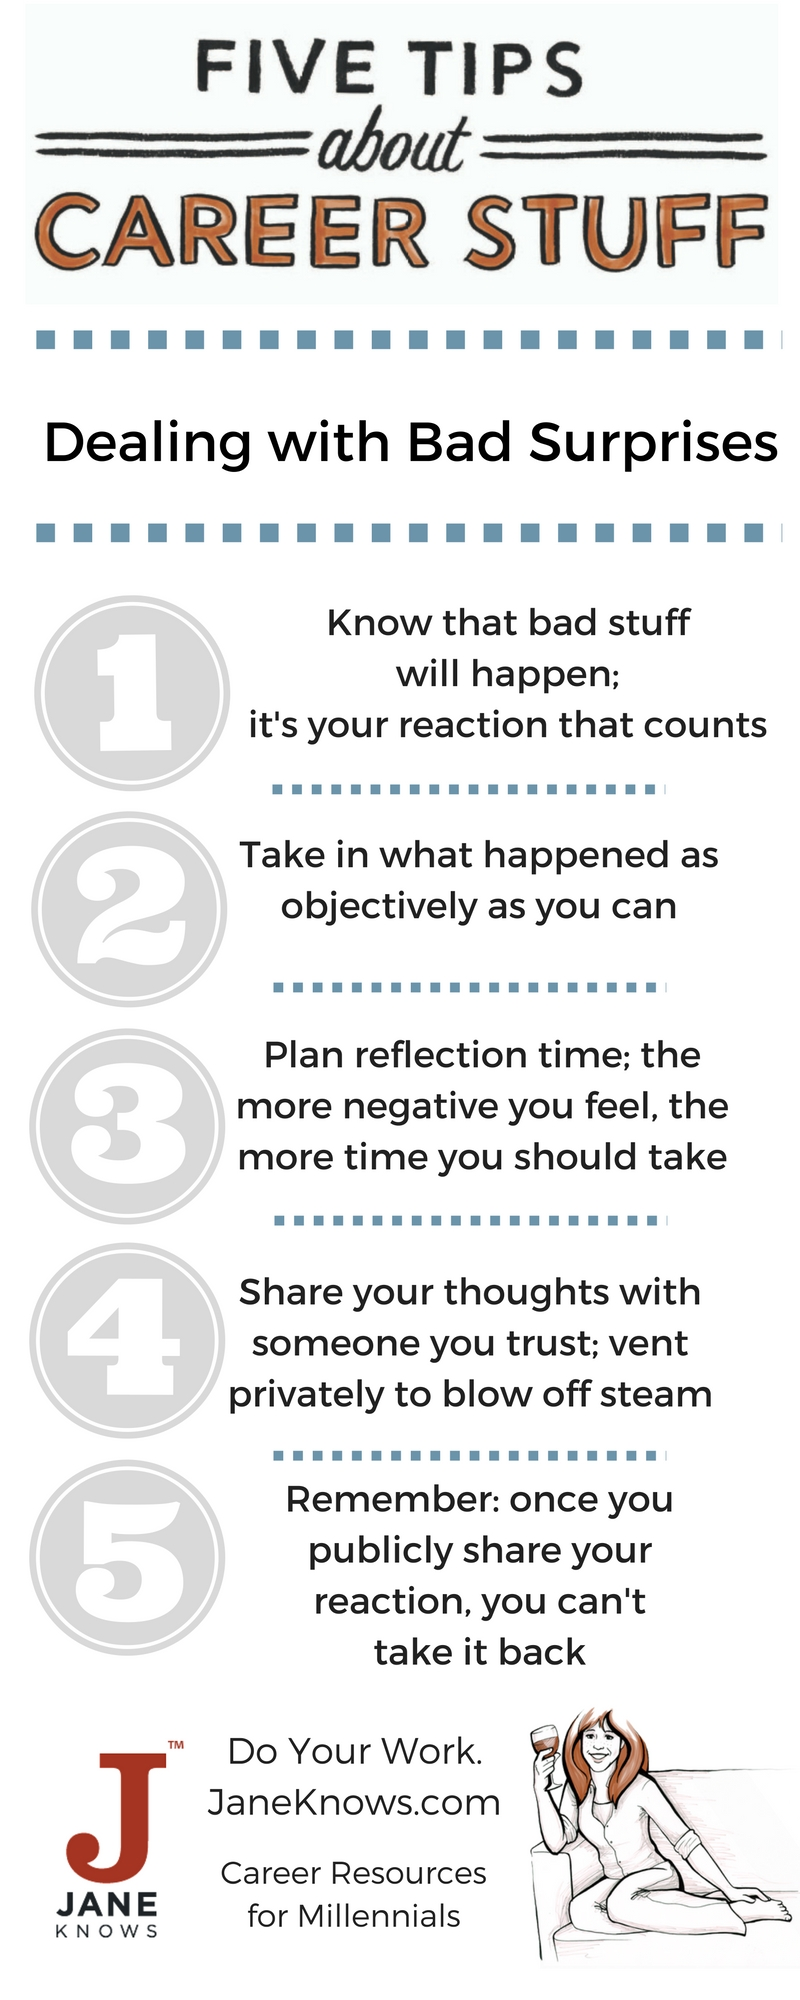 Dealing With Bad Surprises - Infographic